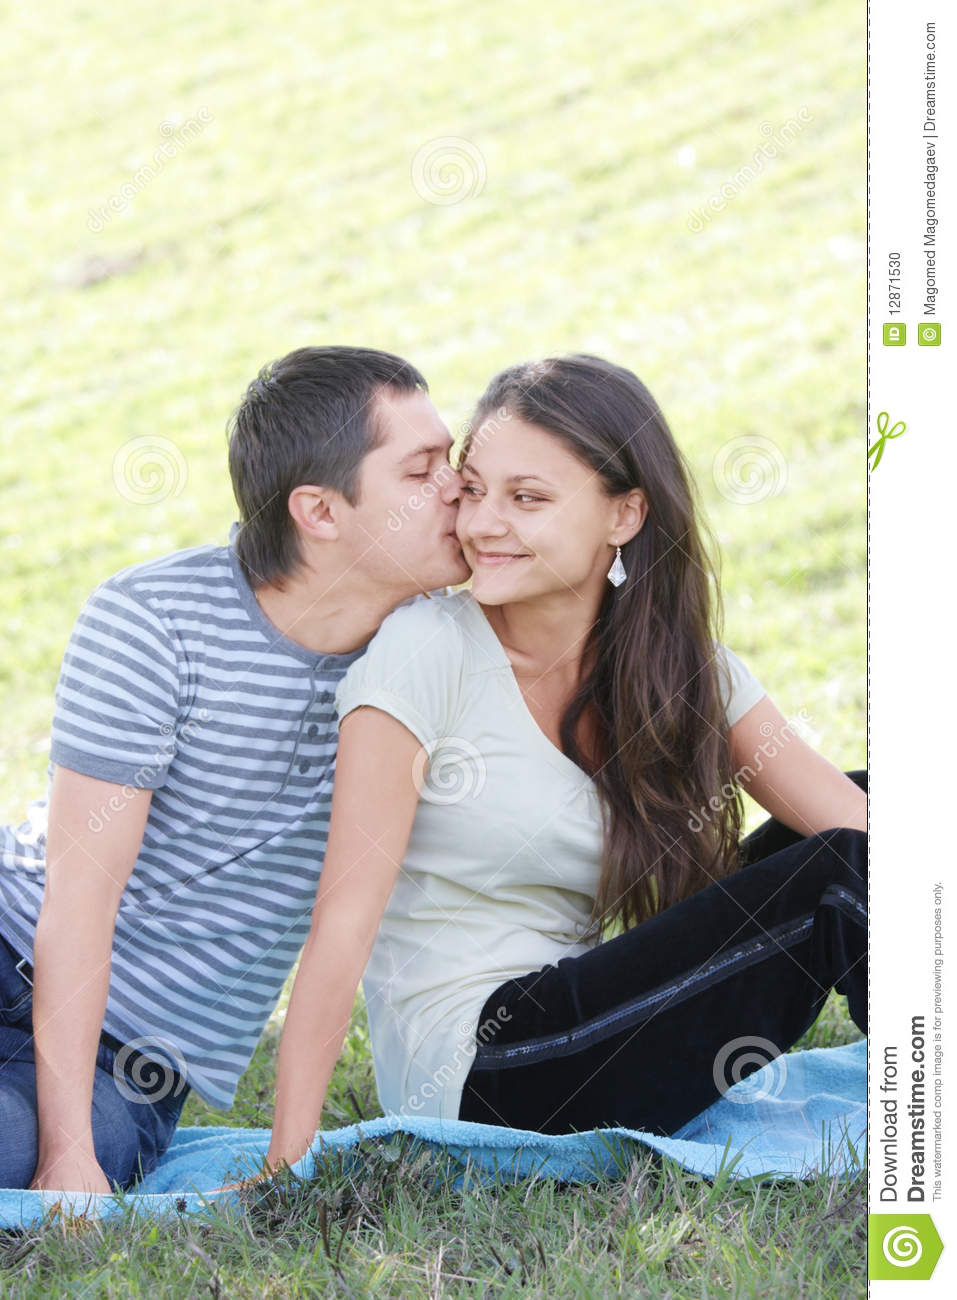 kiss on the cheek not dating